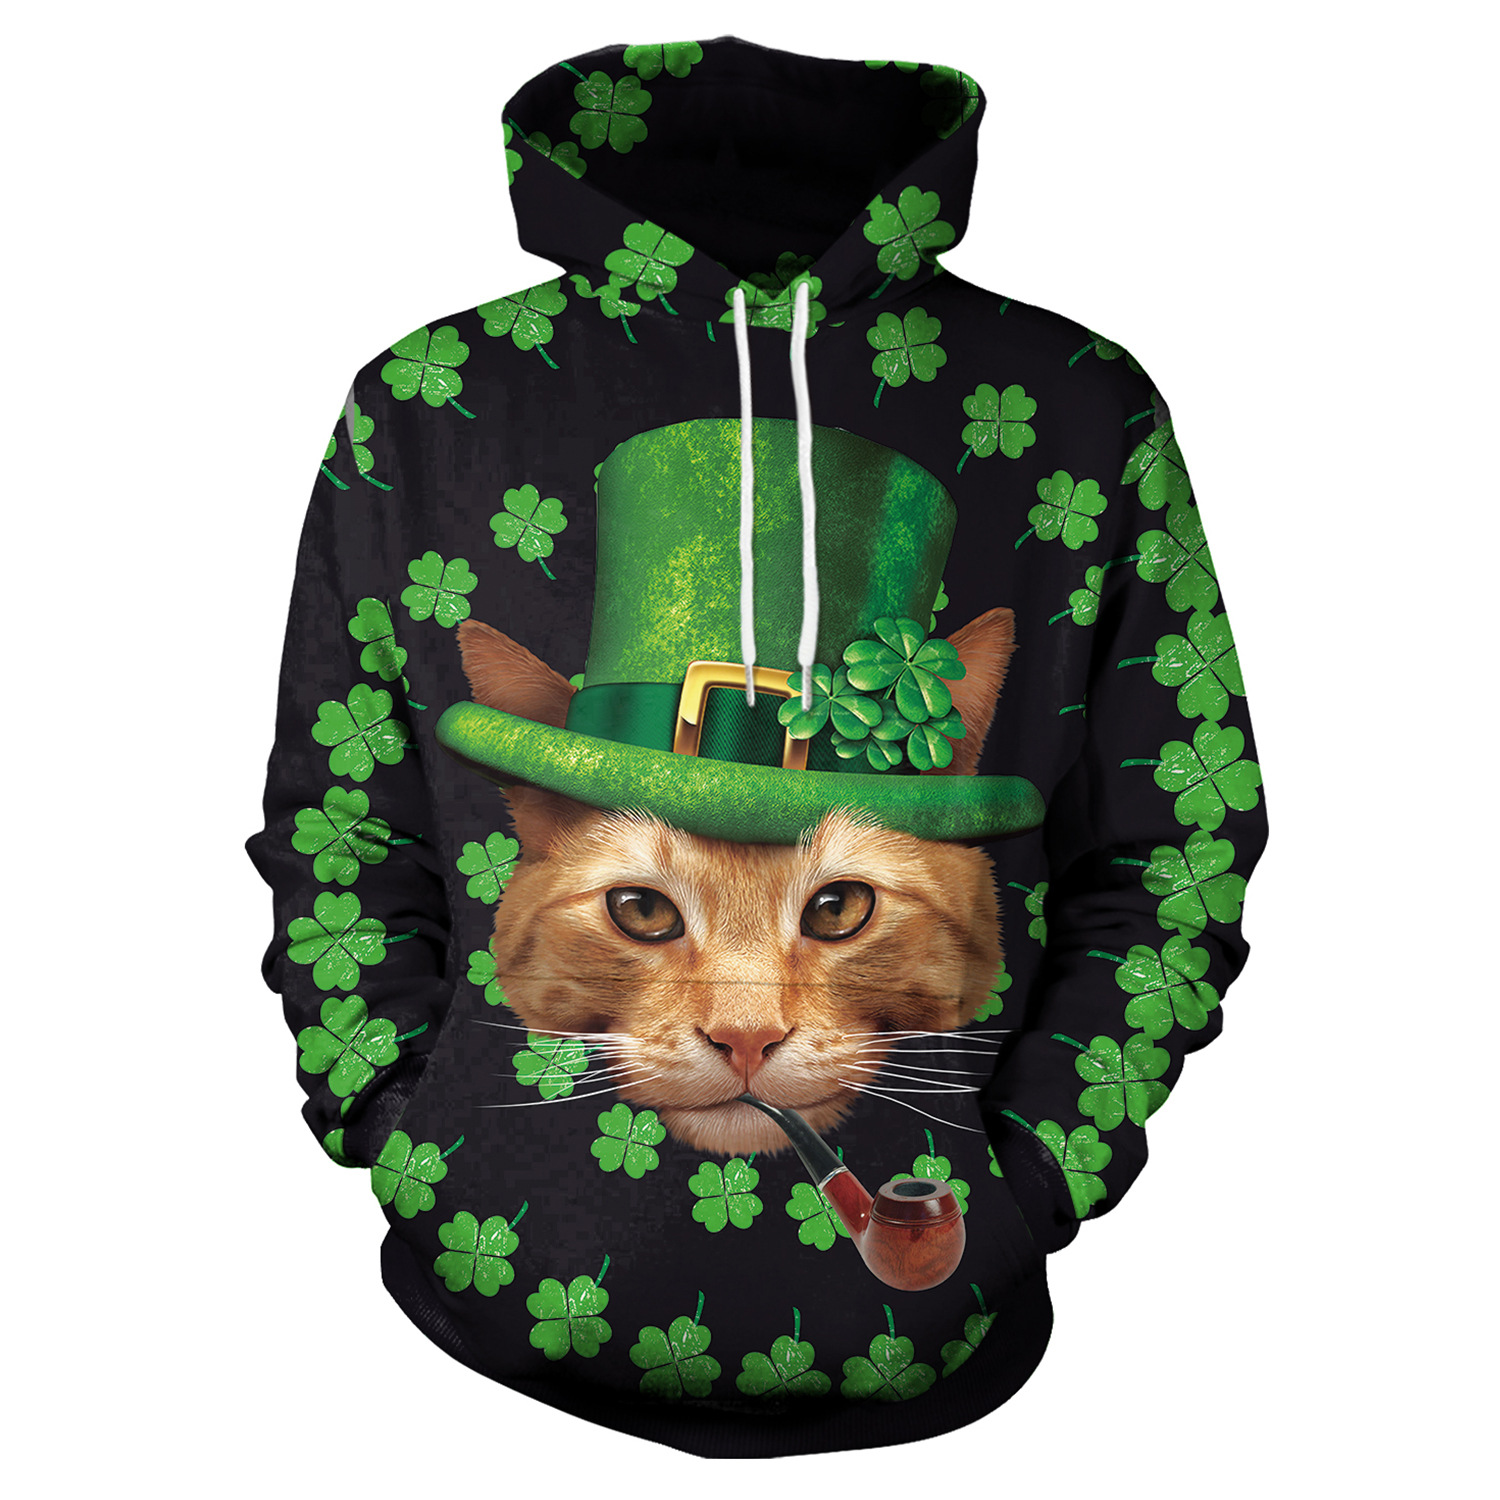 St Patrick's Day Green Hat Cat Shamrocks Print Hoodies Men Hoodie with Hat Round Neck Loose Sweatshirt Pullover Streetwear